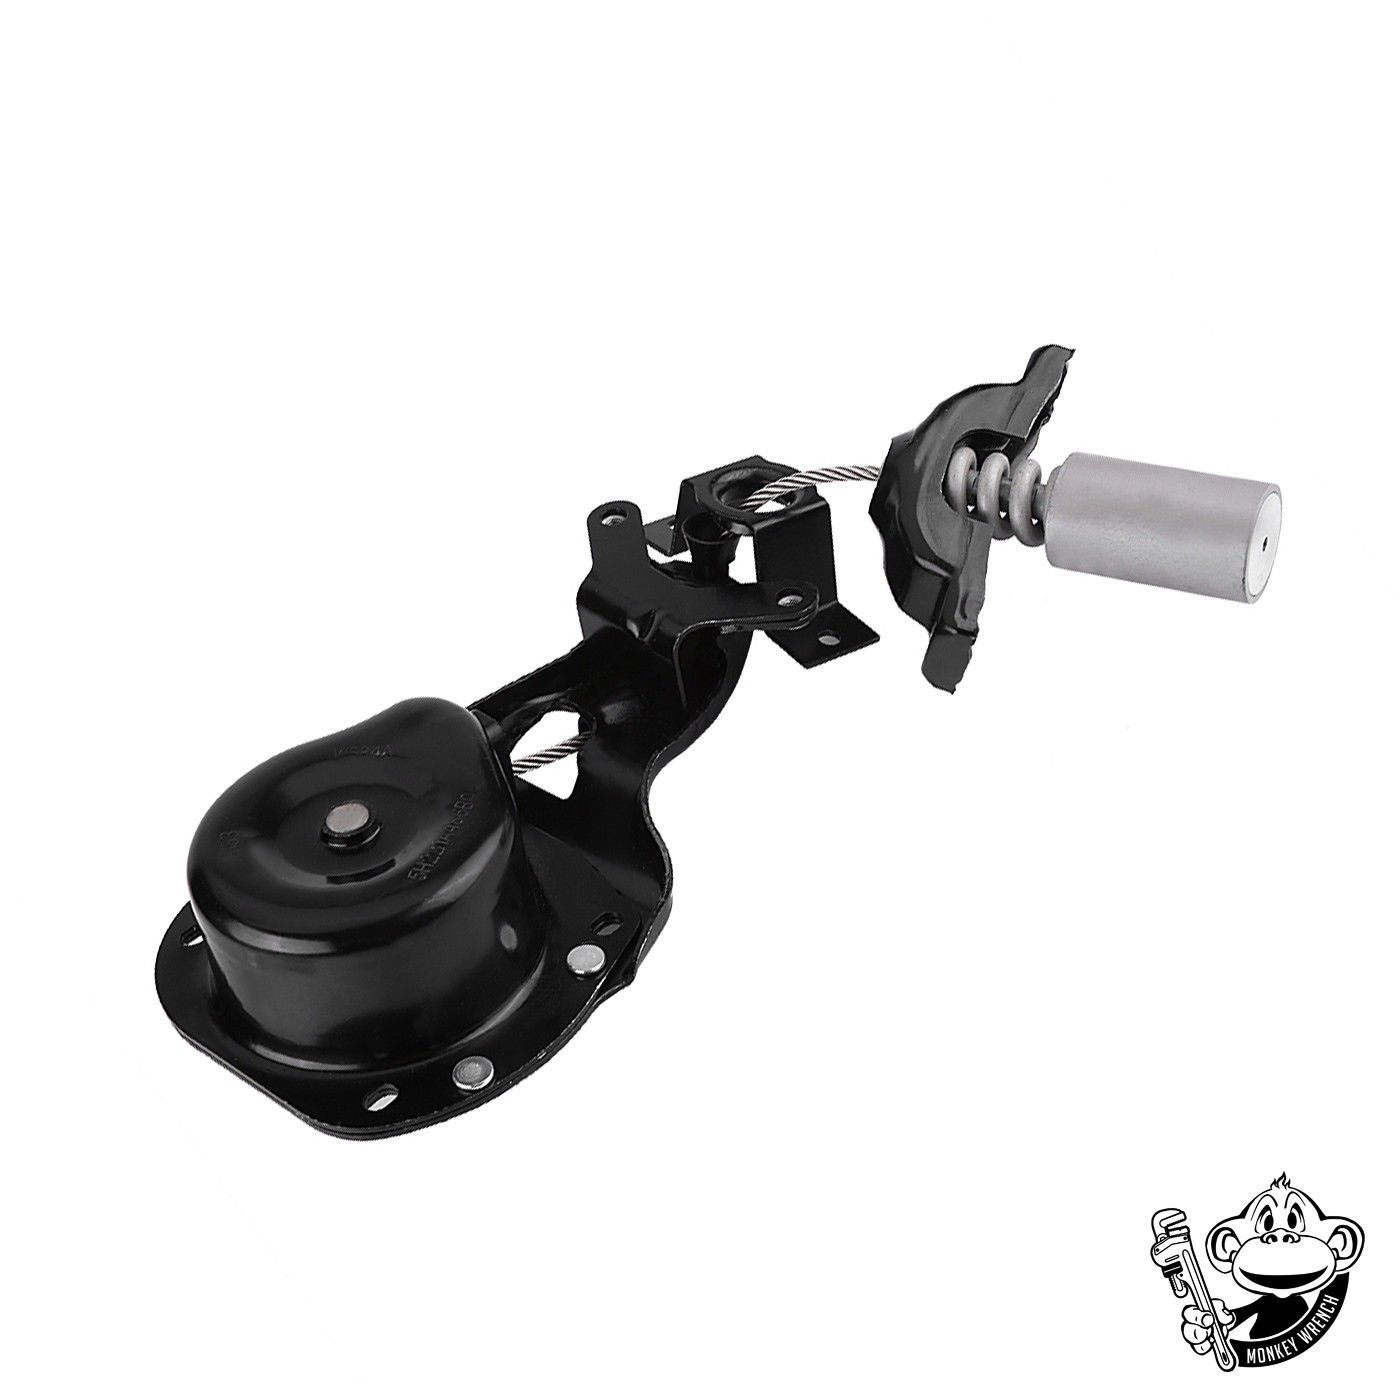 LAND ROVER DISCOVERY 3/4 SPARE WHEEL WINCH LR024145 Monkey Wrench